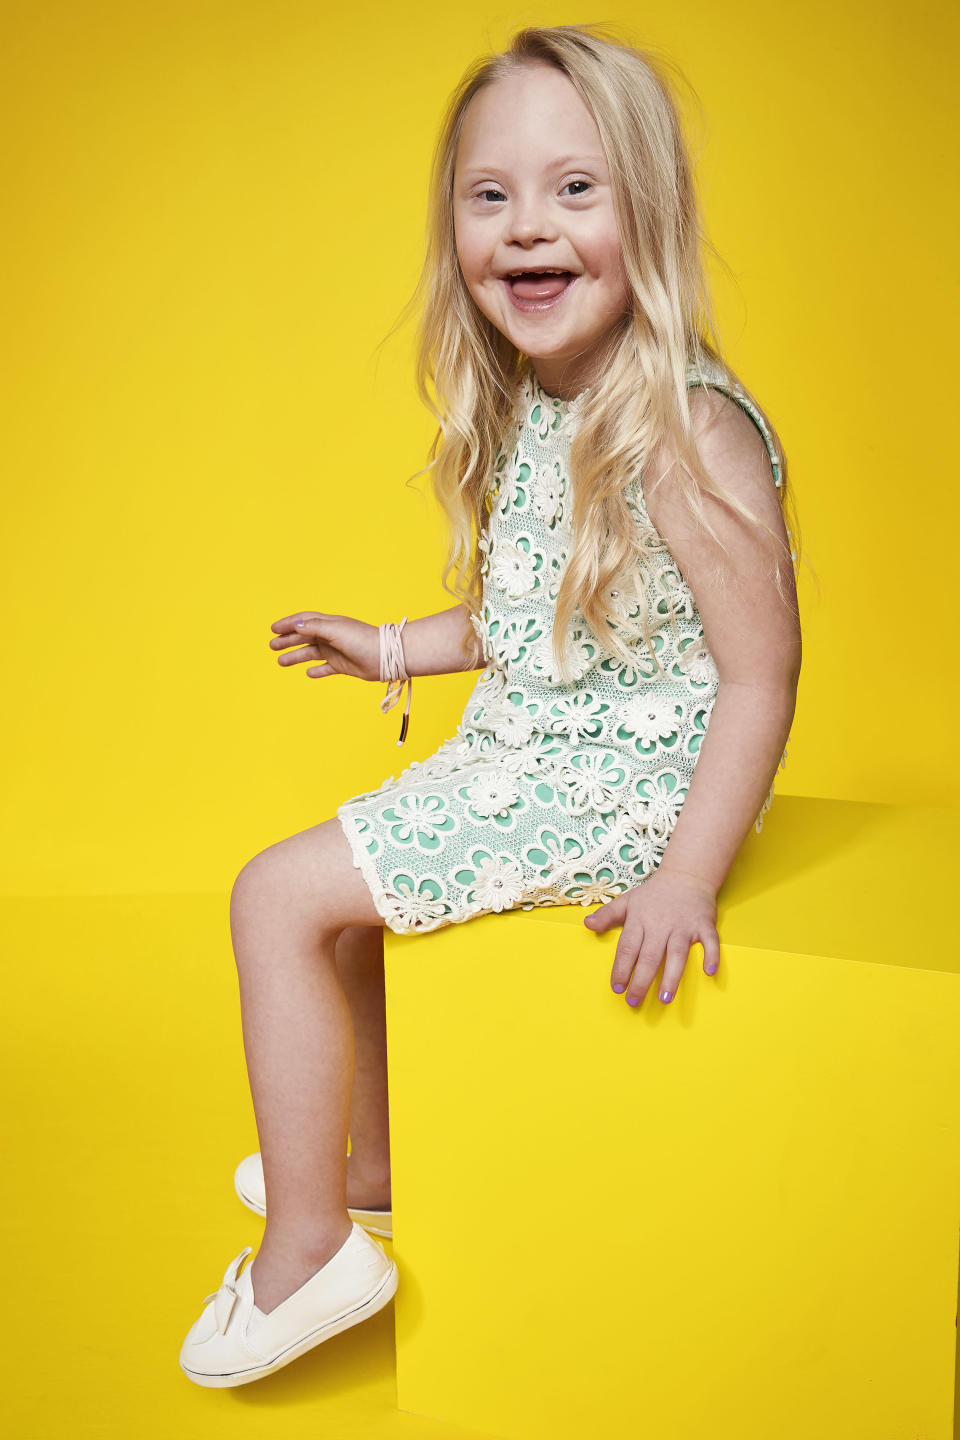 Cora, who has Down Syndrome poses up a storm in the latest campaign [Photo: River Island]